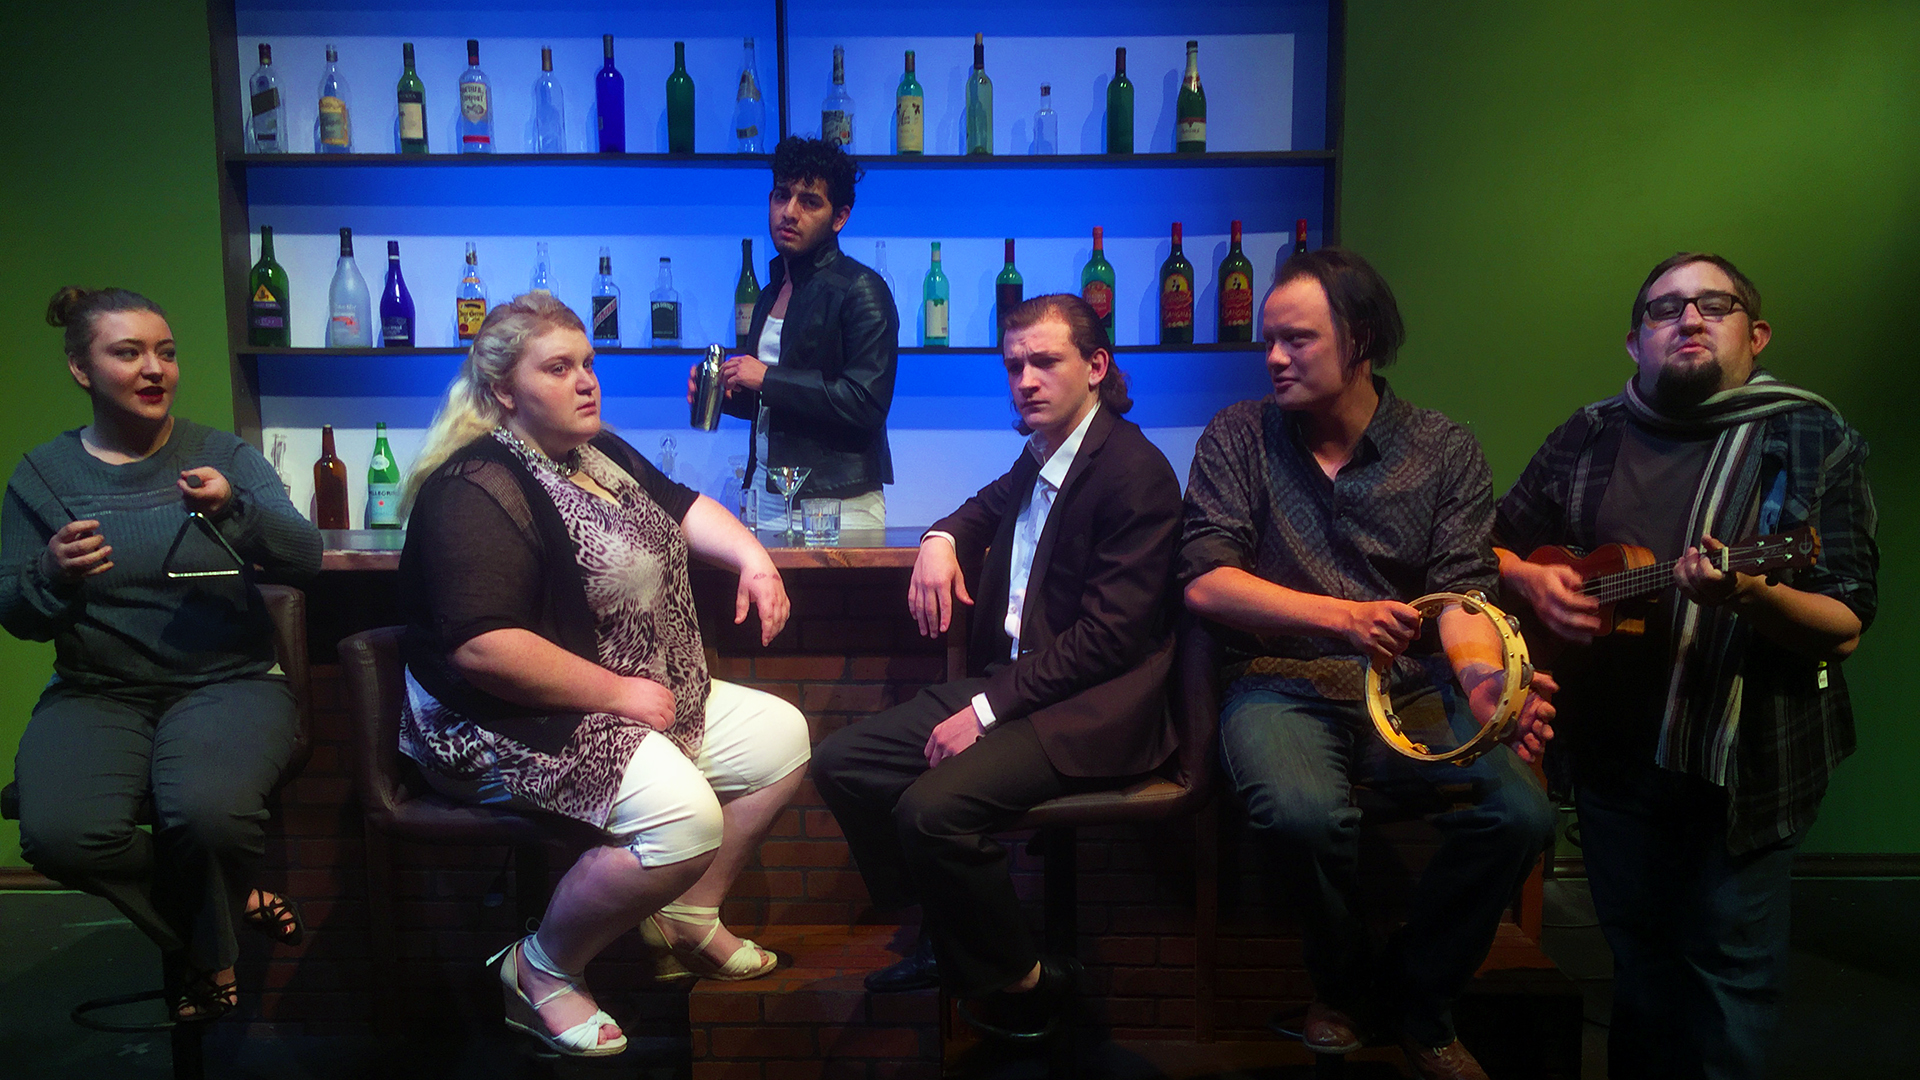 In TheatreAC's 'First Date,' tunes tell the tale of an awkward start to romance